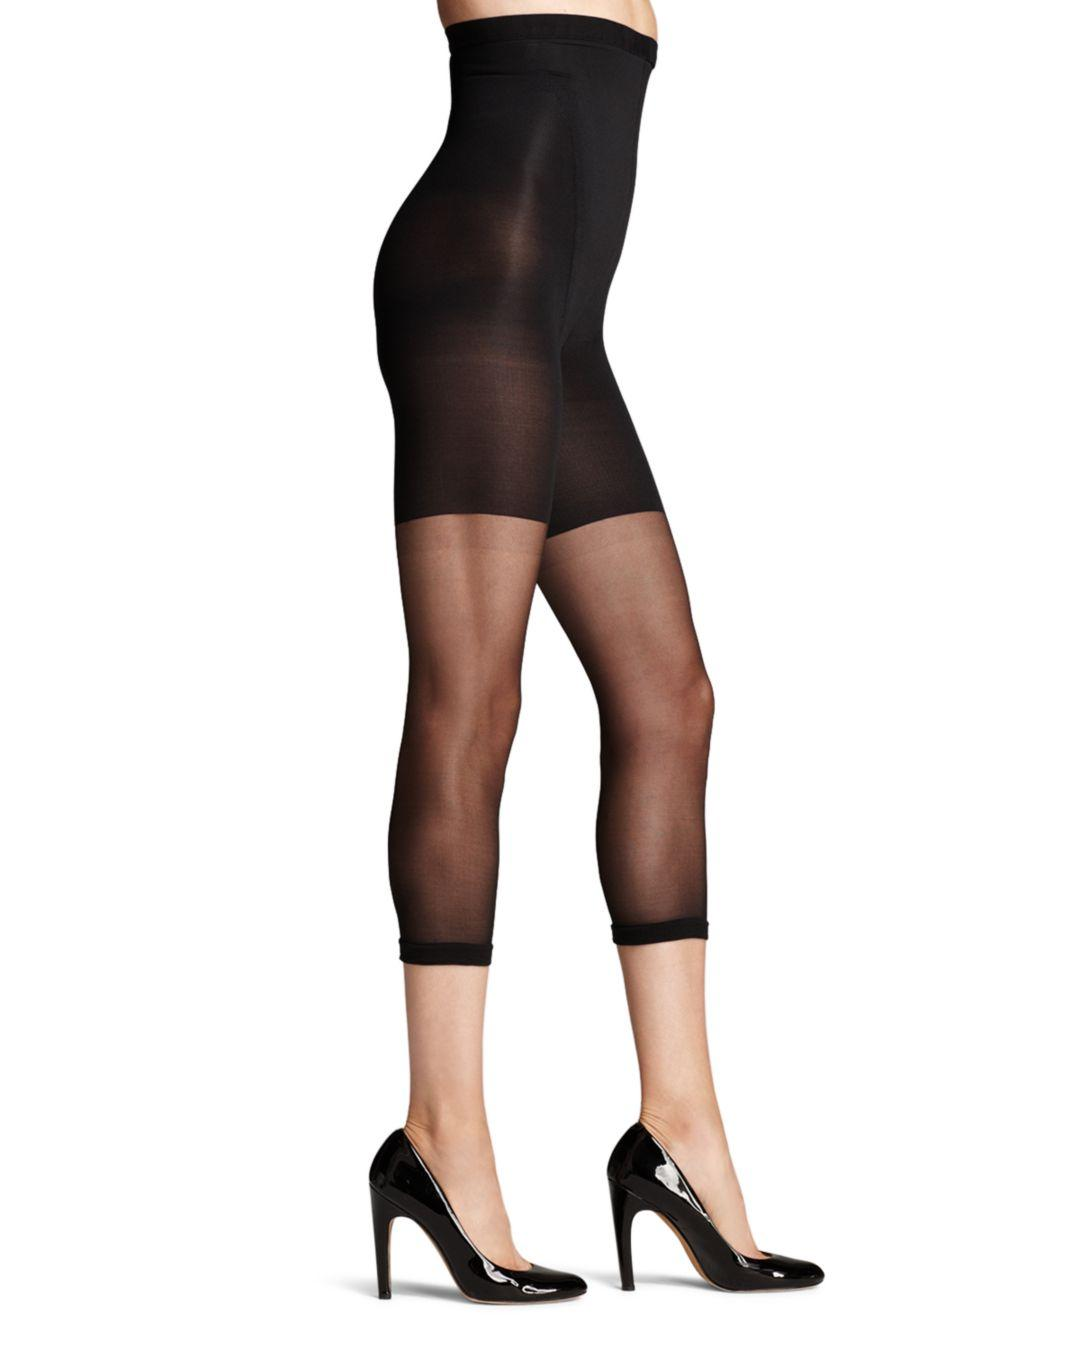 1be0f846d66 Spanx In-power Line Super Footless Shaper Tights in Black - Lyst